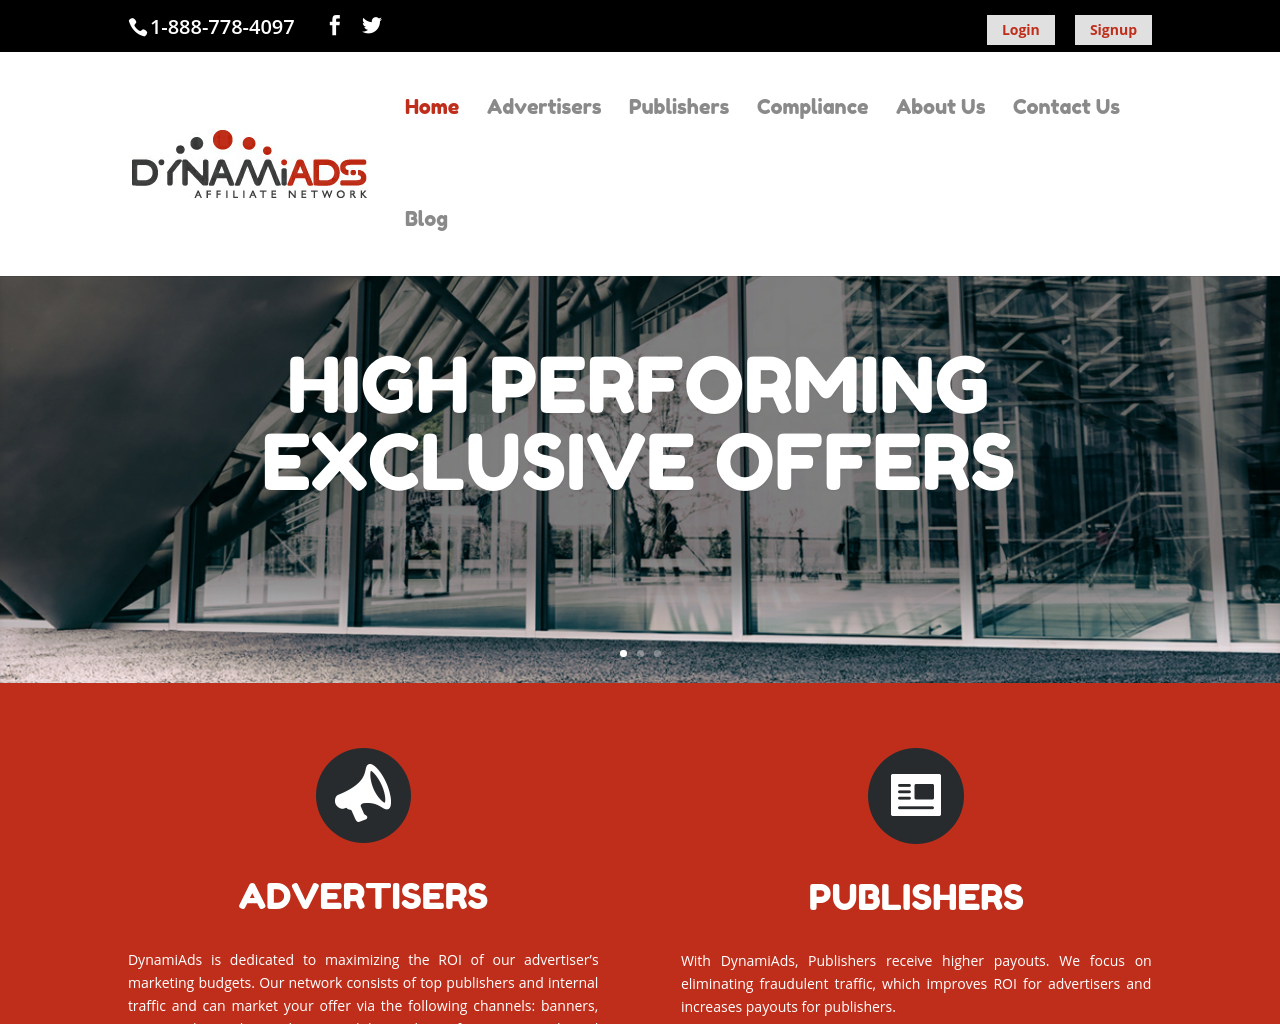 DynamiAds.com-Advertising-Reviews-Pricing